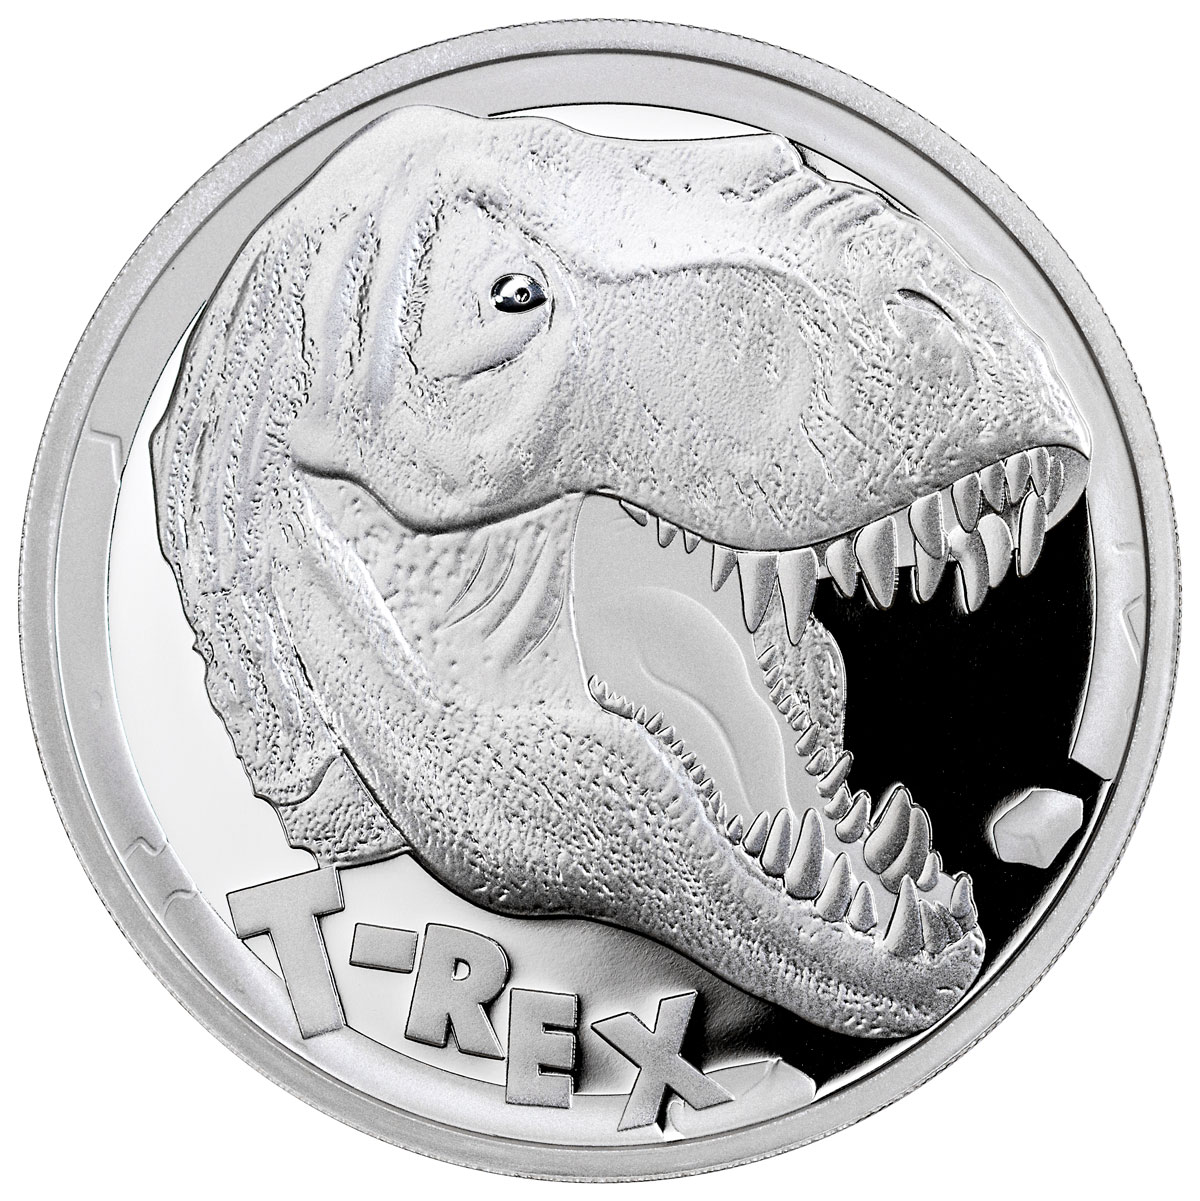 2017 Tuvalu T-Rex - 5 oz Silver Proof $5 Coin GEM Proof OGP